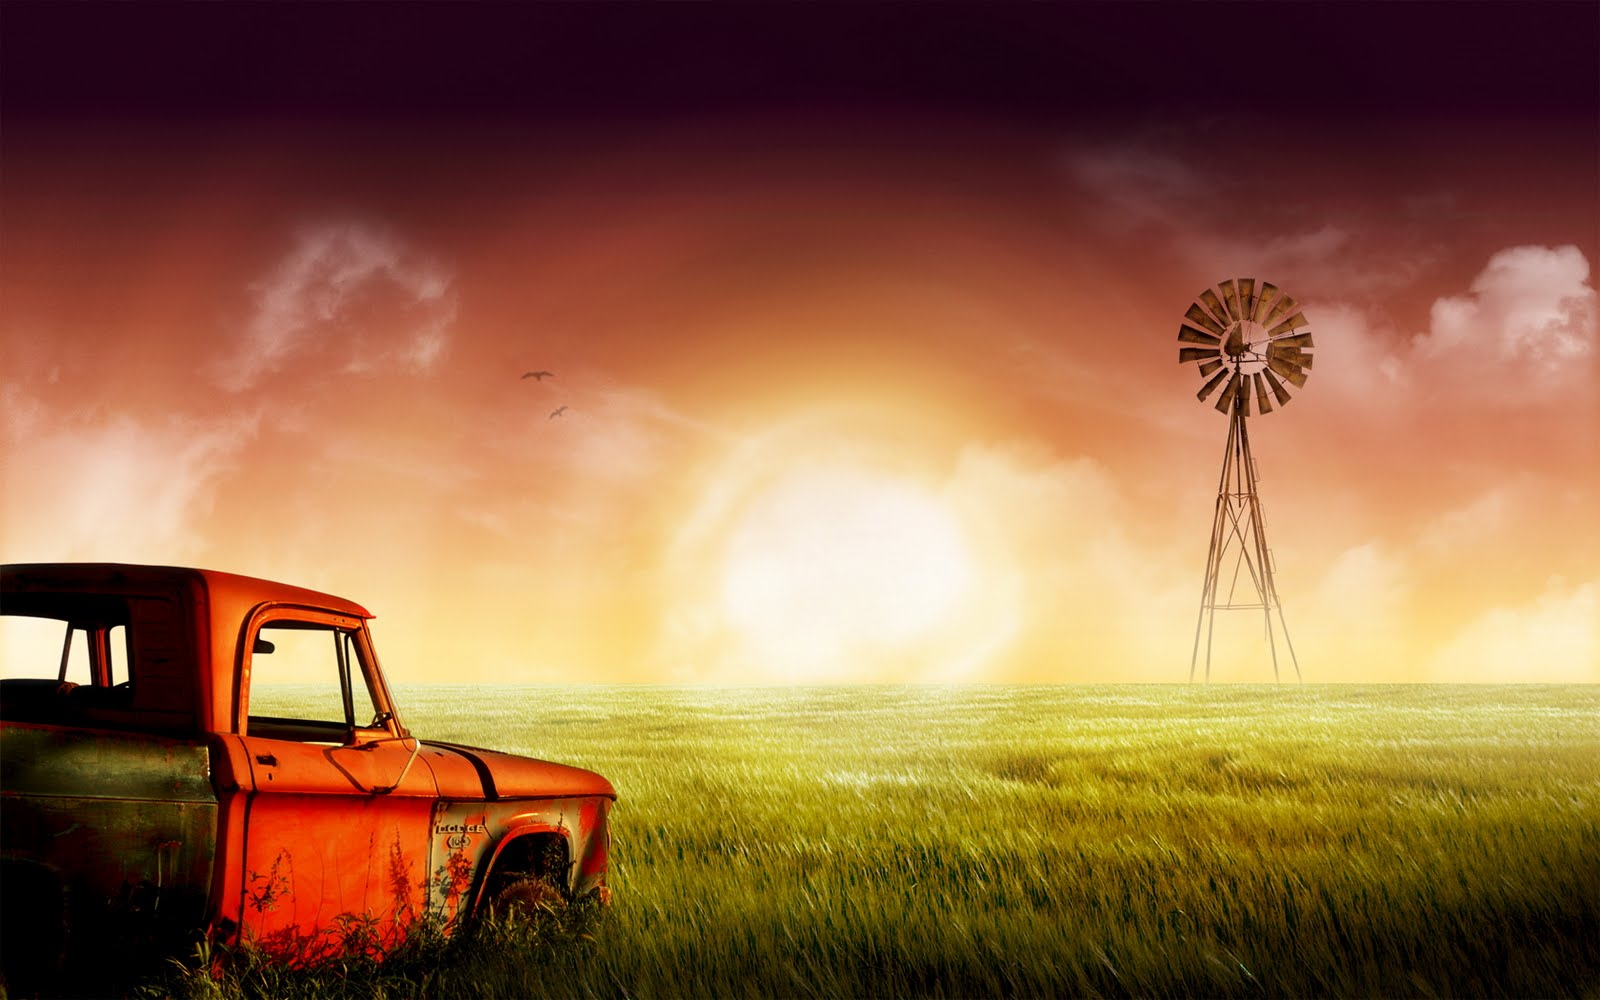 Computer Wallpaper Free Download Hd Old Farm Wallpaper Stock Photos